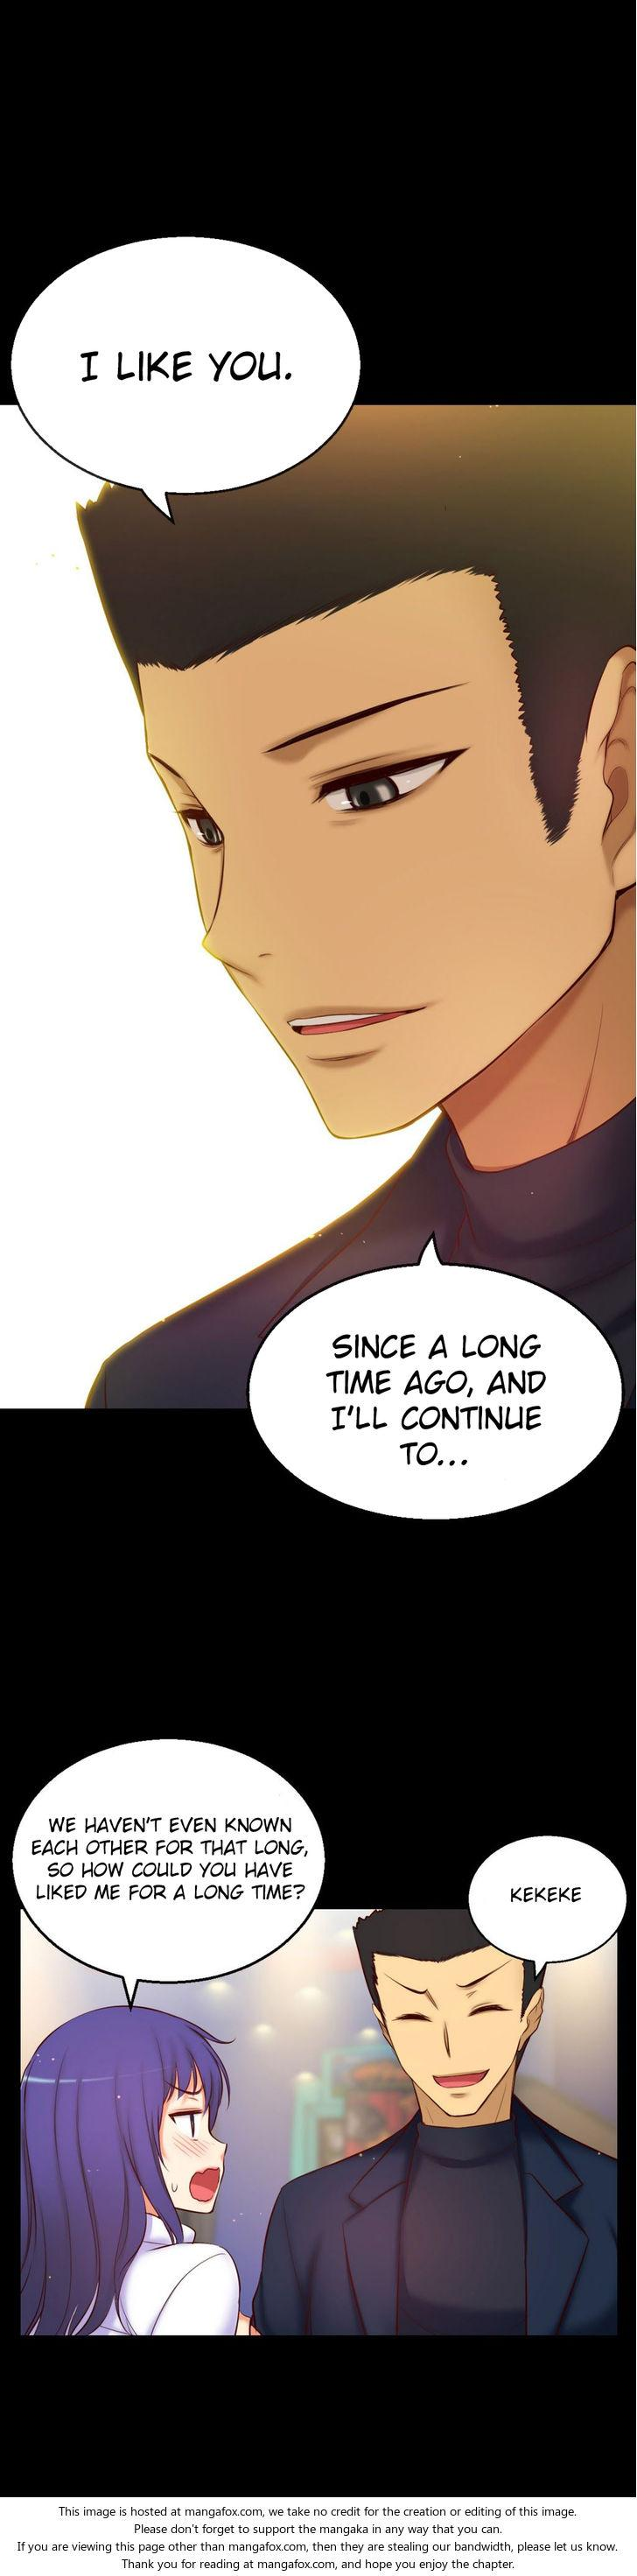 [Donggul Gom] She is Young (English) Part 1/2 1338